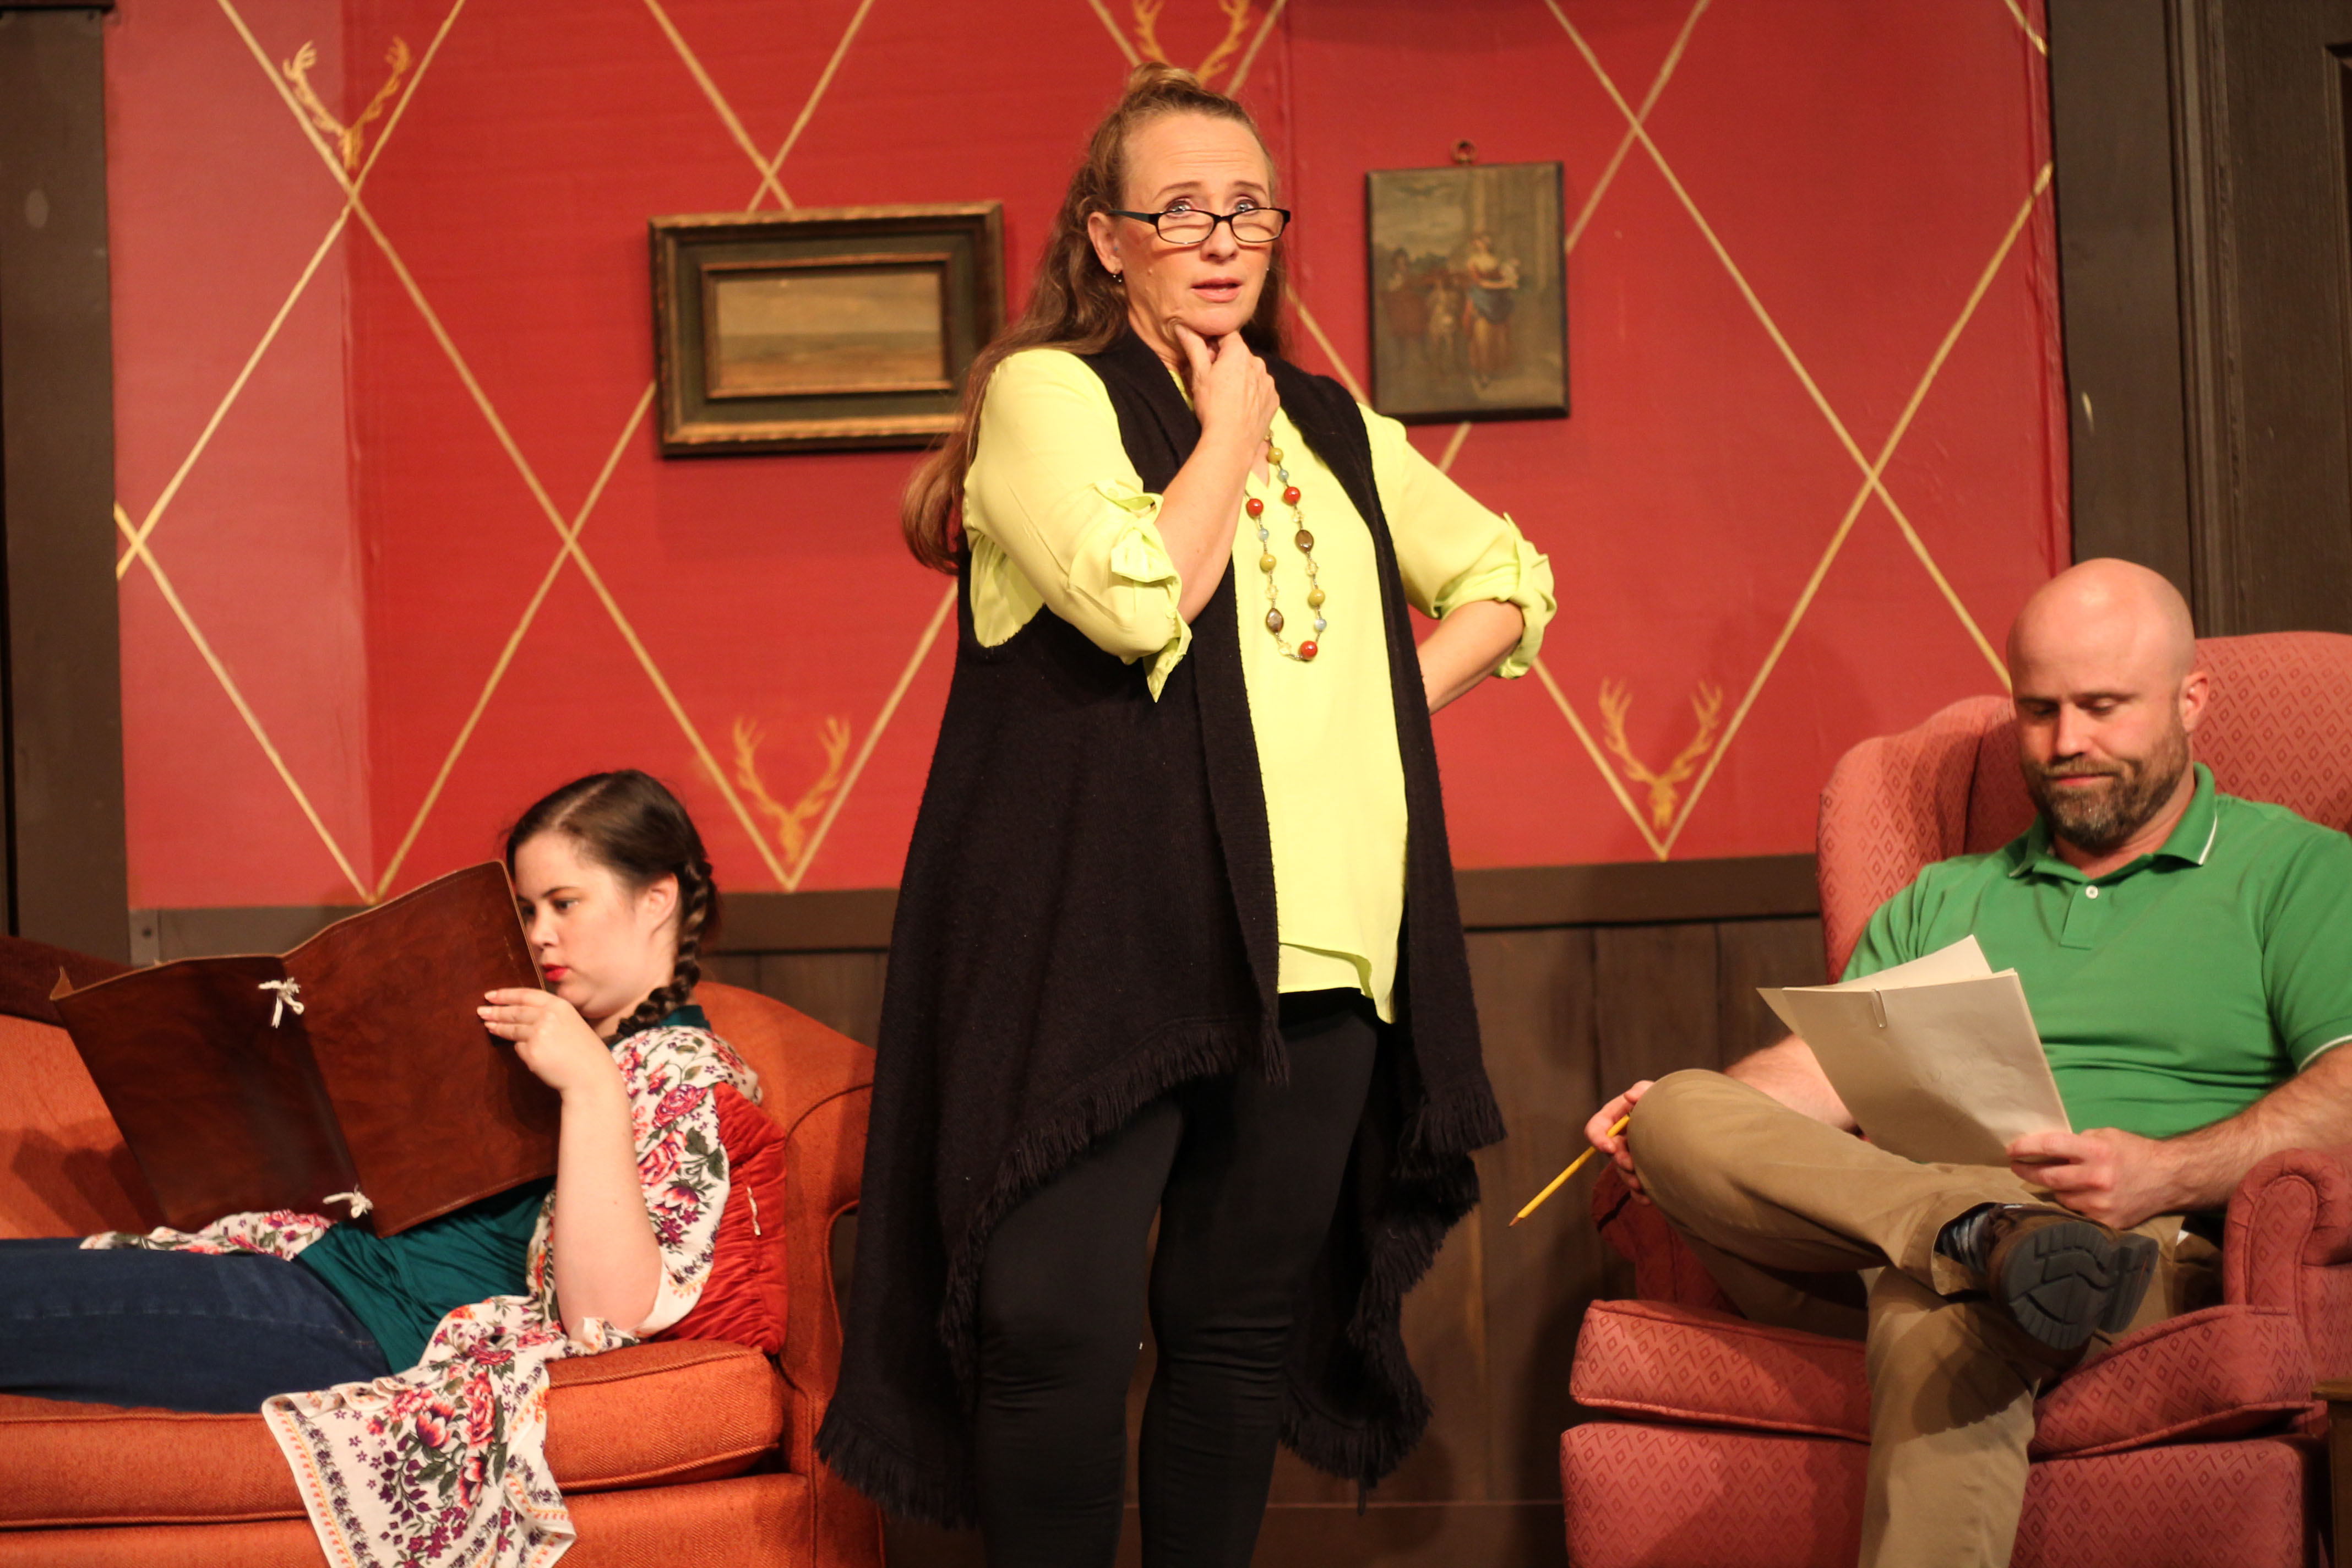 Olathe Civic Theatre Association Octa Debuts The Haunting Of Hill House Show Photos And Info